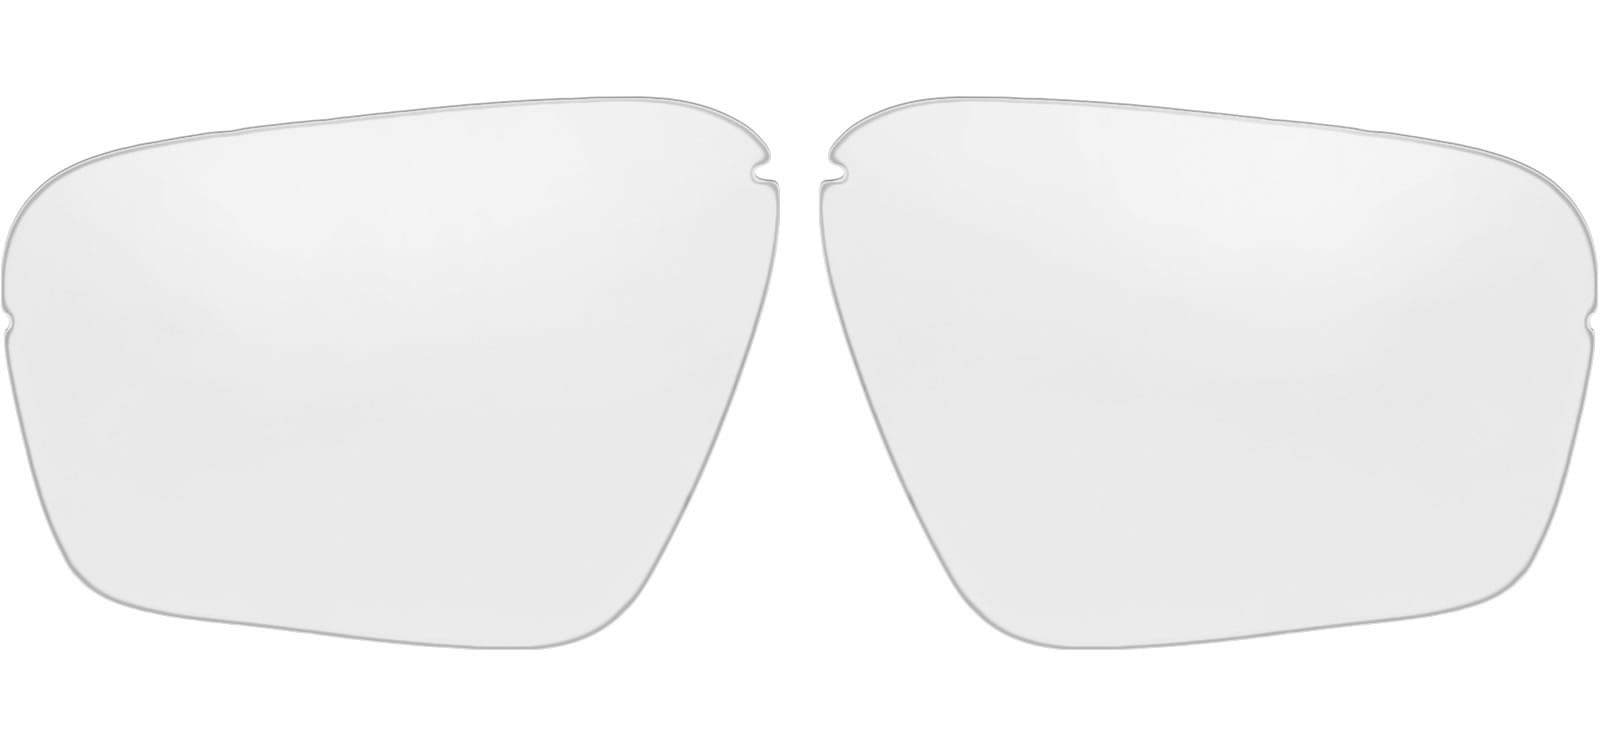 Ranger Edge Lenses